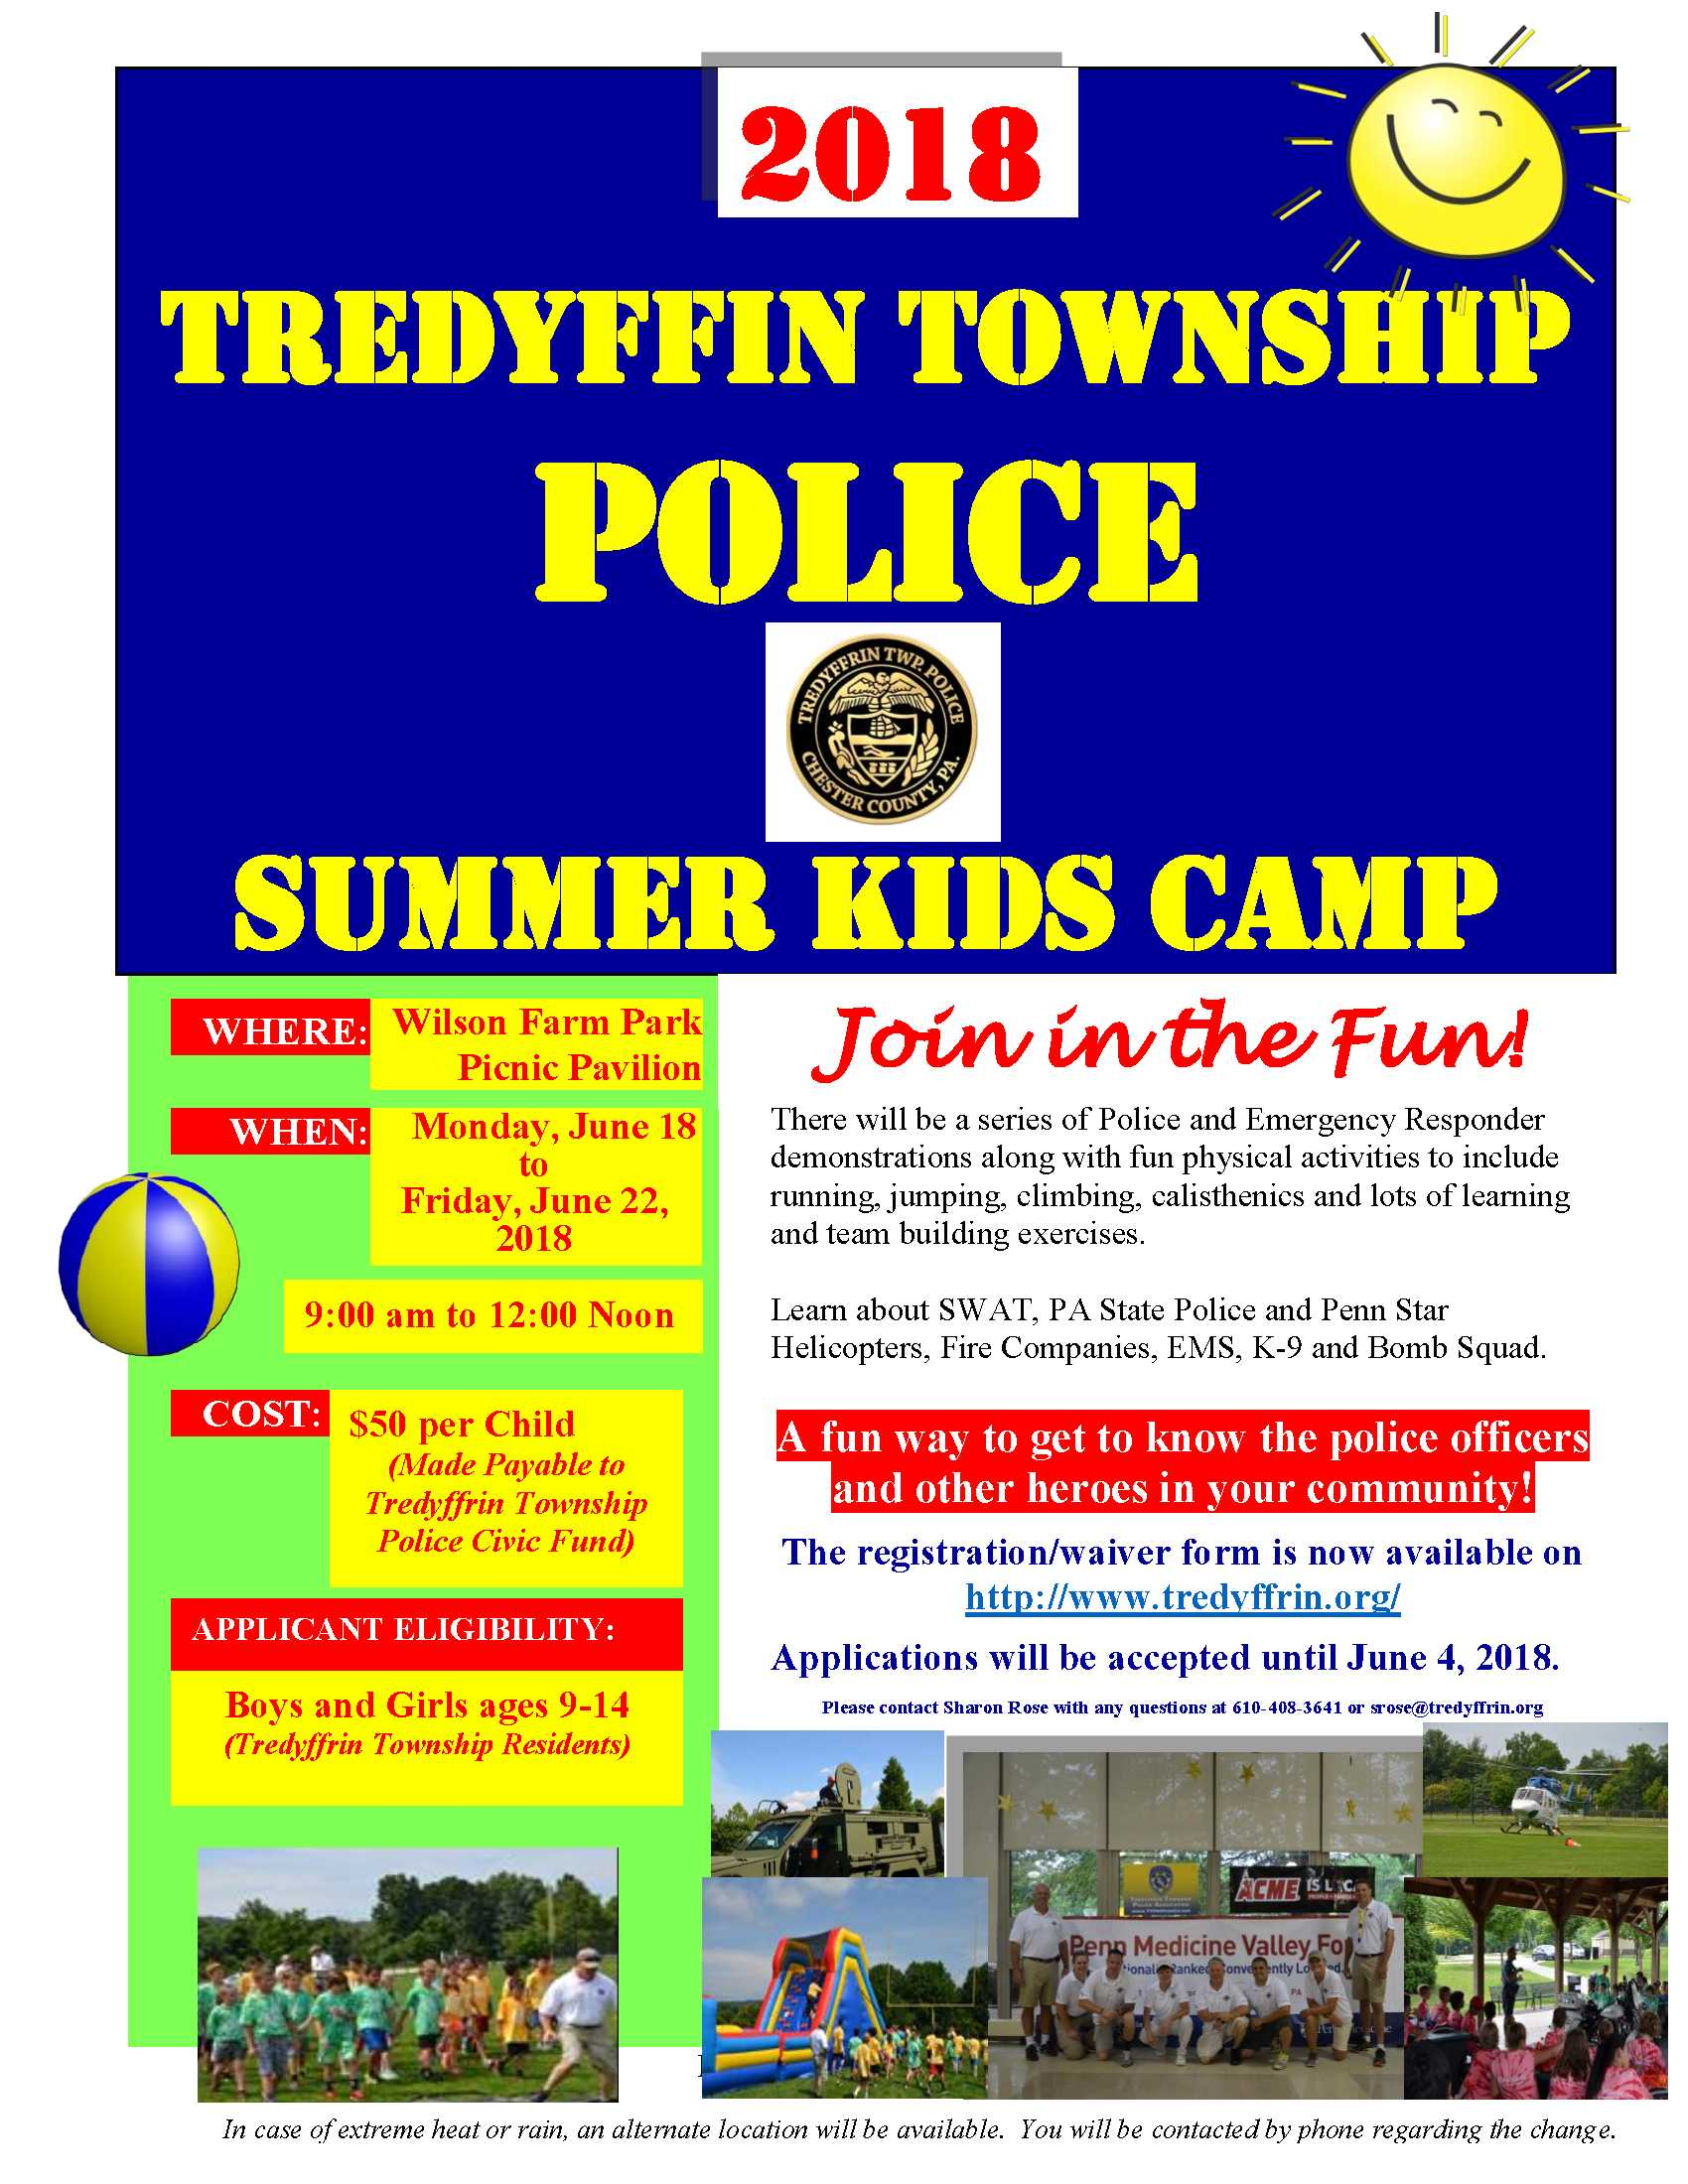 TTPD summer camp 2018 flyer